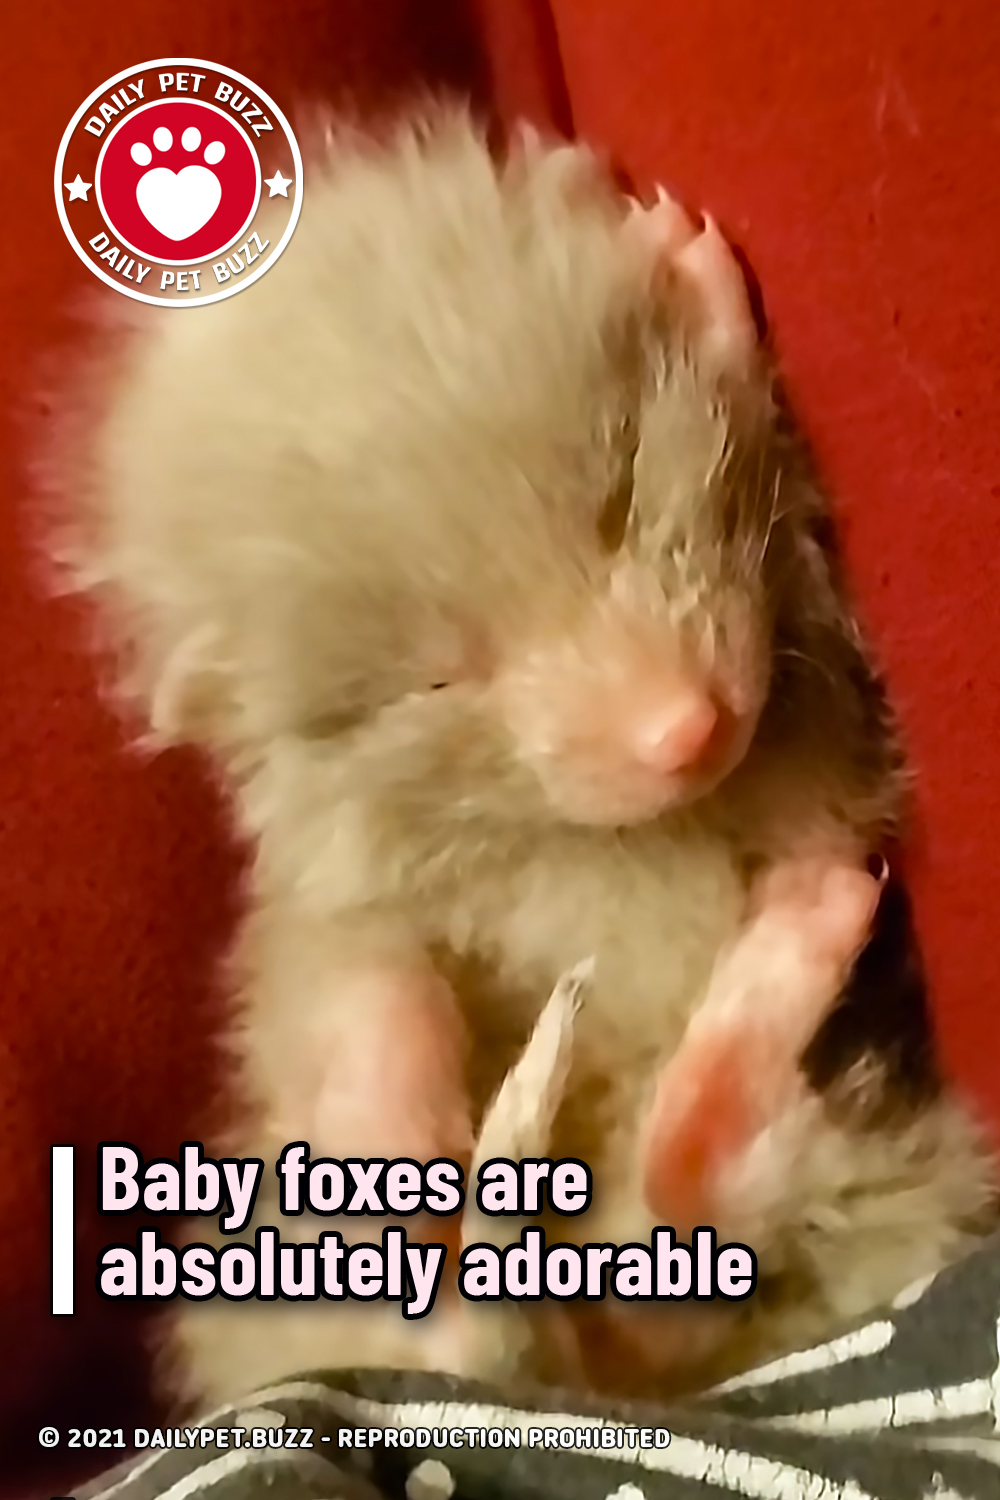 Baby foxes are absolutely adorable